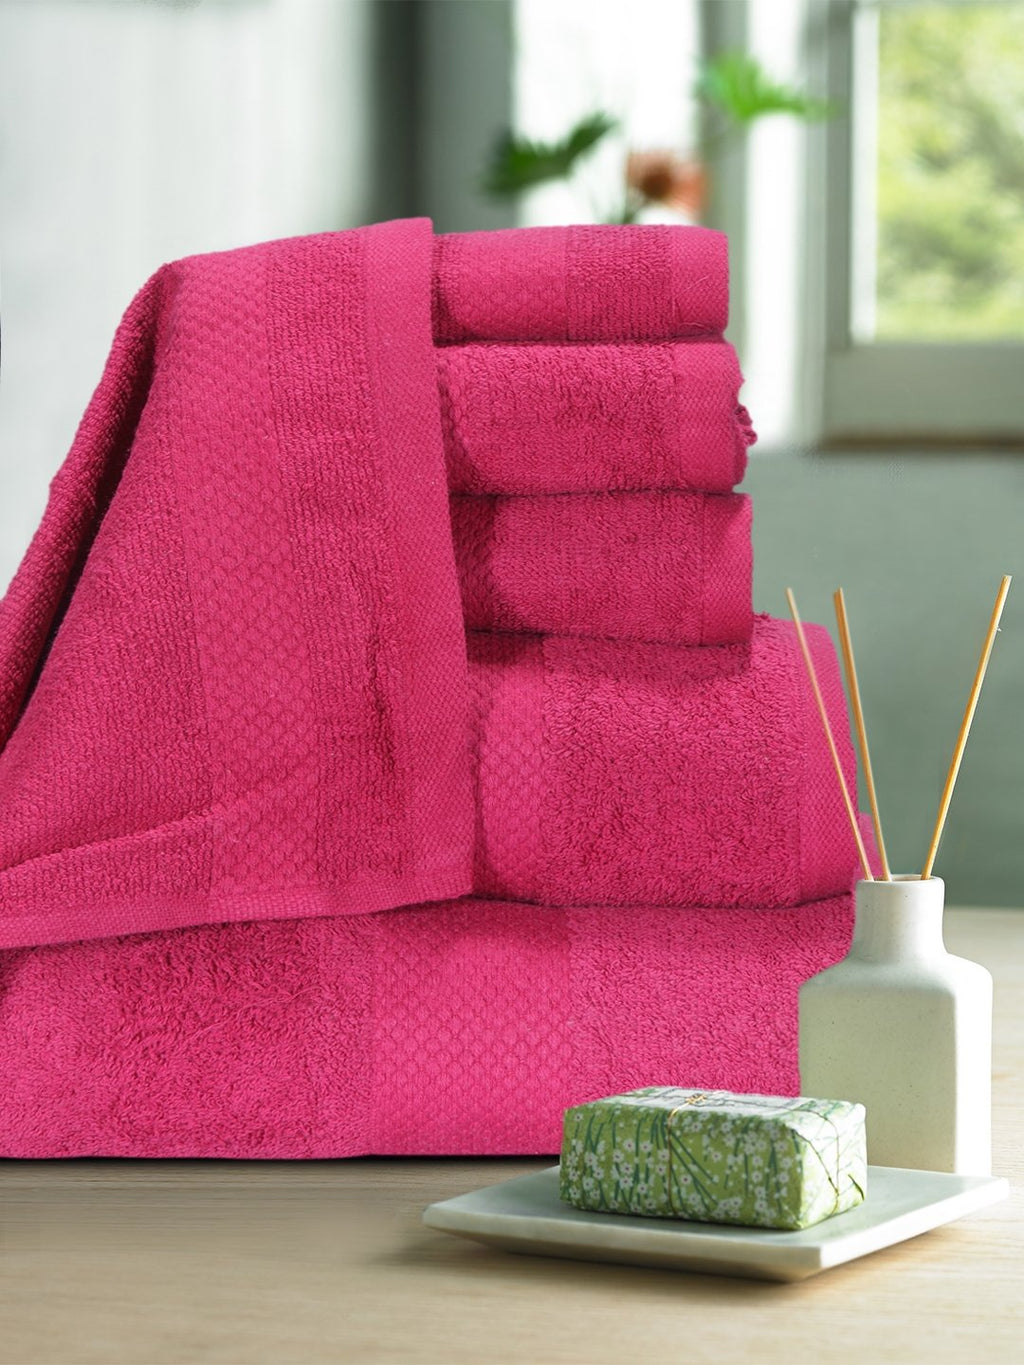 cotton towel set online,set of 6 towel set online,bath hand & face towel set